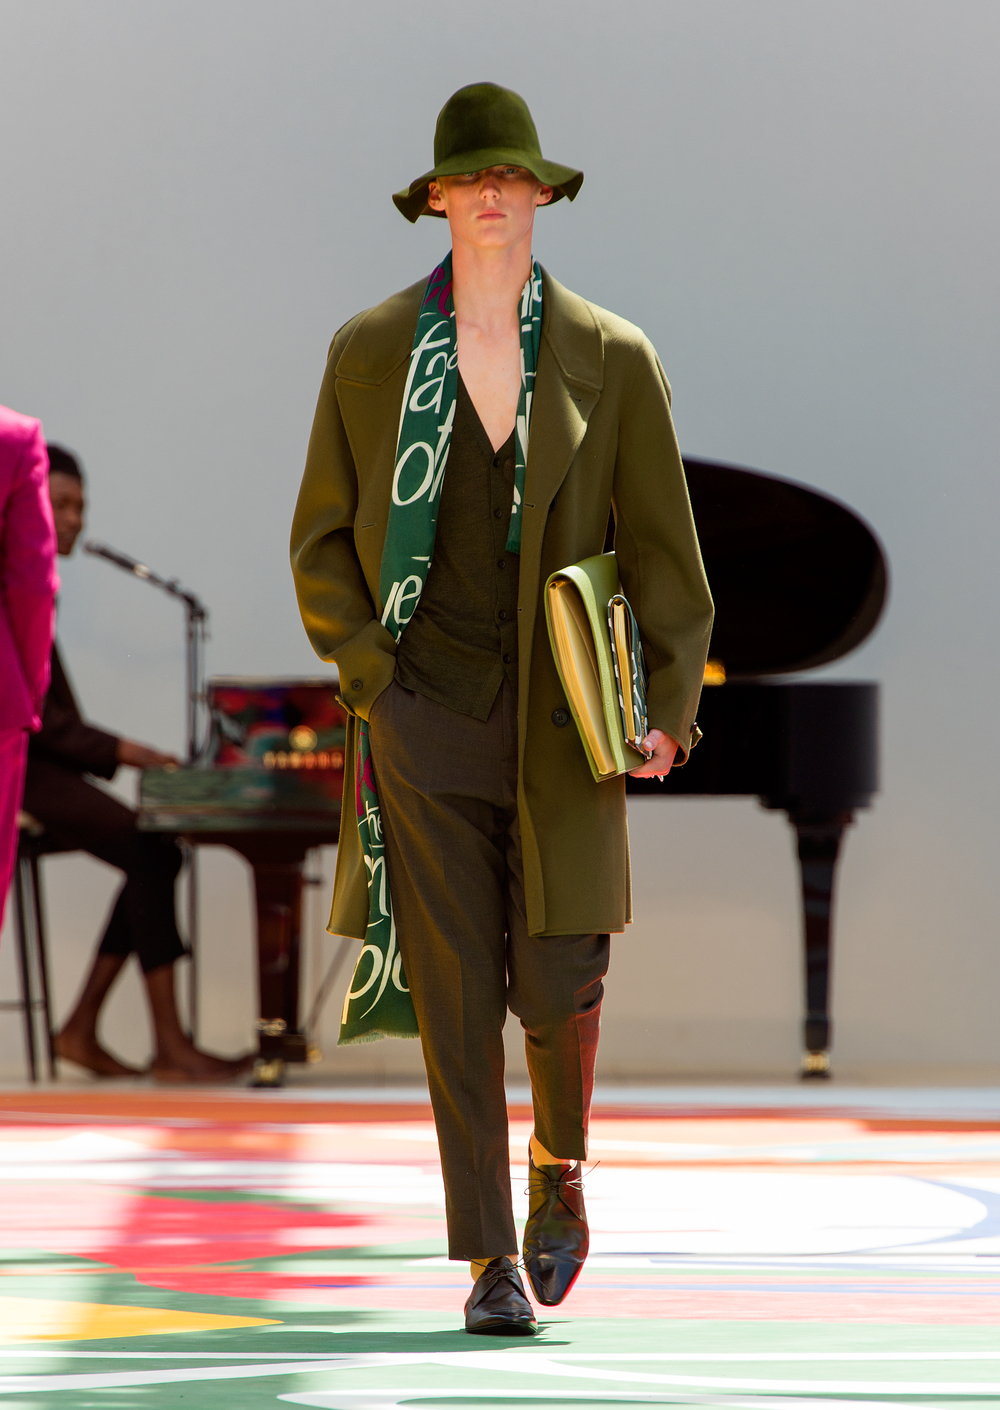 Burberry Prorsum Menswear Spring Summer 2015 Collection - Look 29.jpg